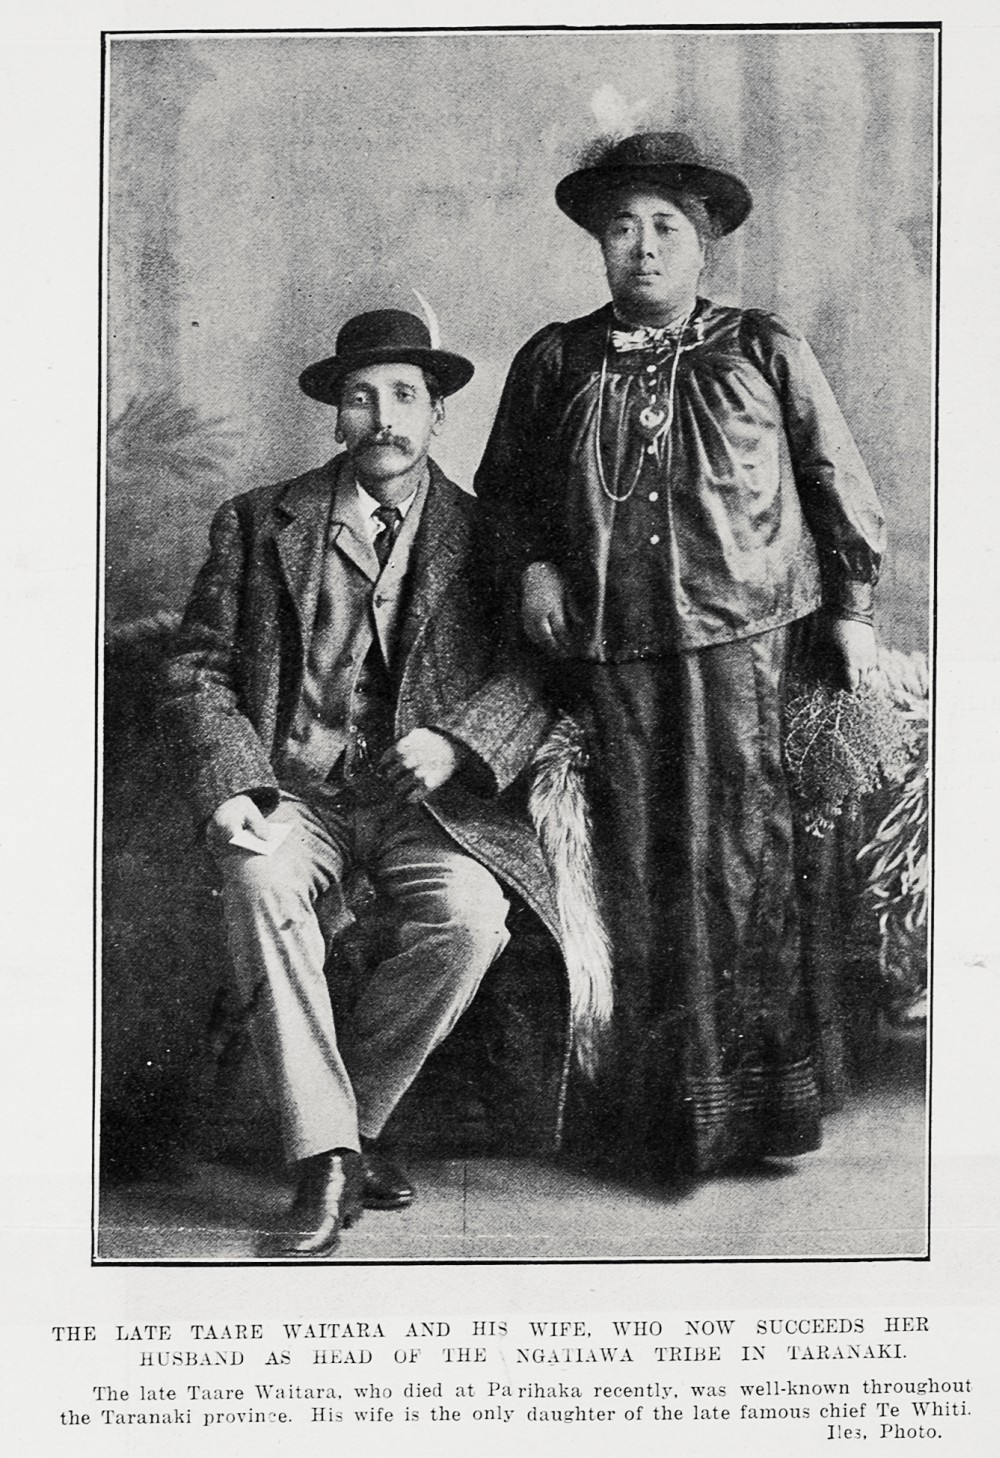 THE LATE TAARE WAITARA AND HIS WIFE, WHO NOW SUCCEEDS HER HUSBAND AS HEAD OF THE NGATIAWA TRIBE IN TARANAKI.